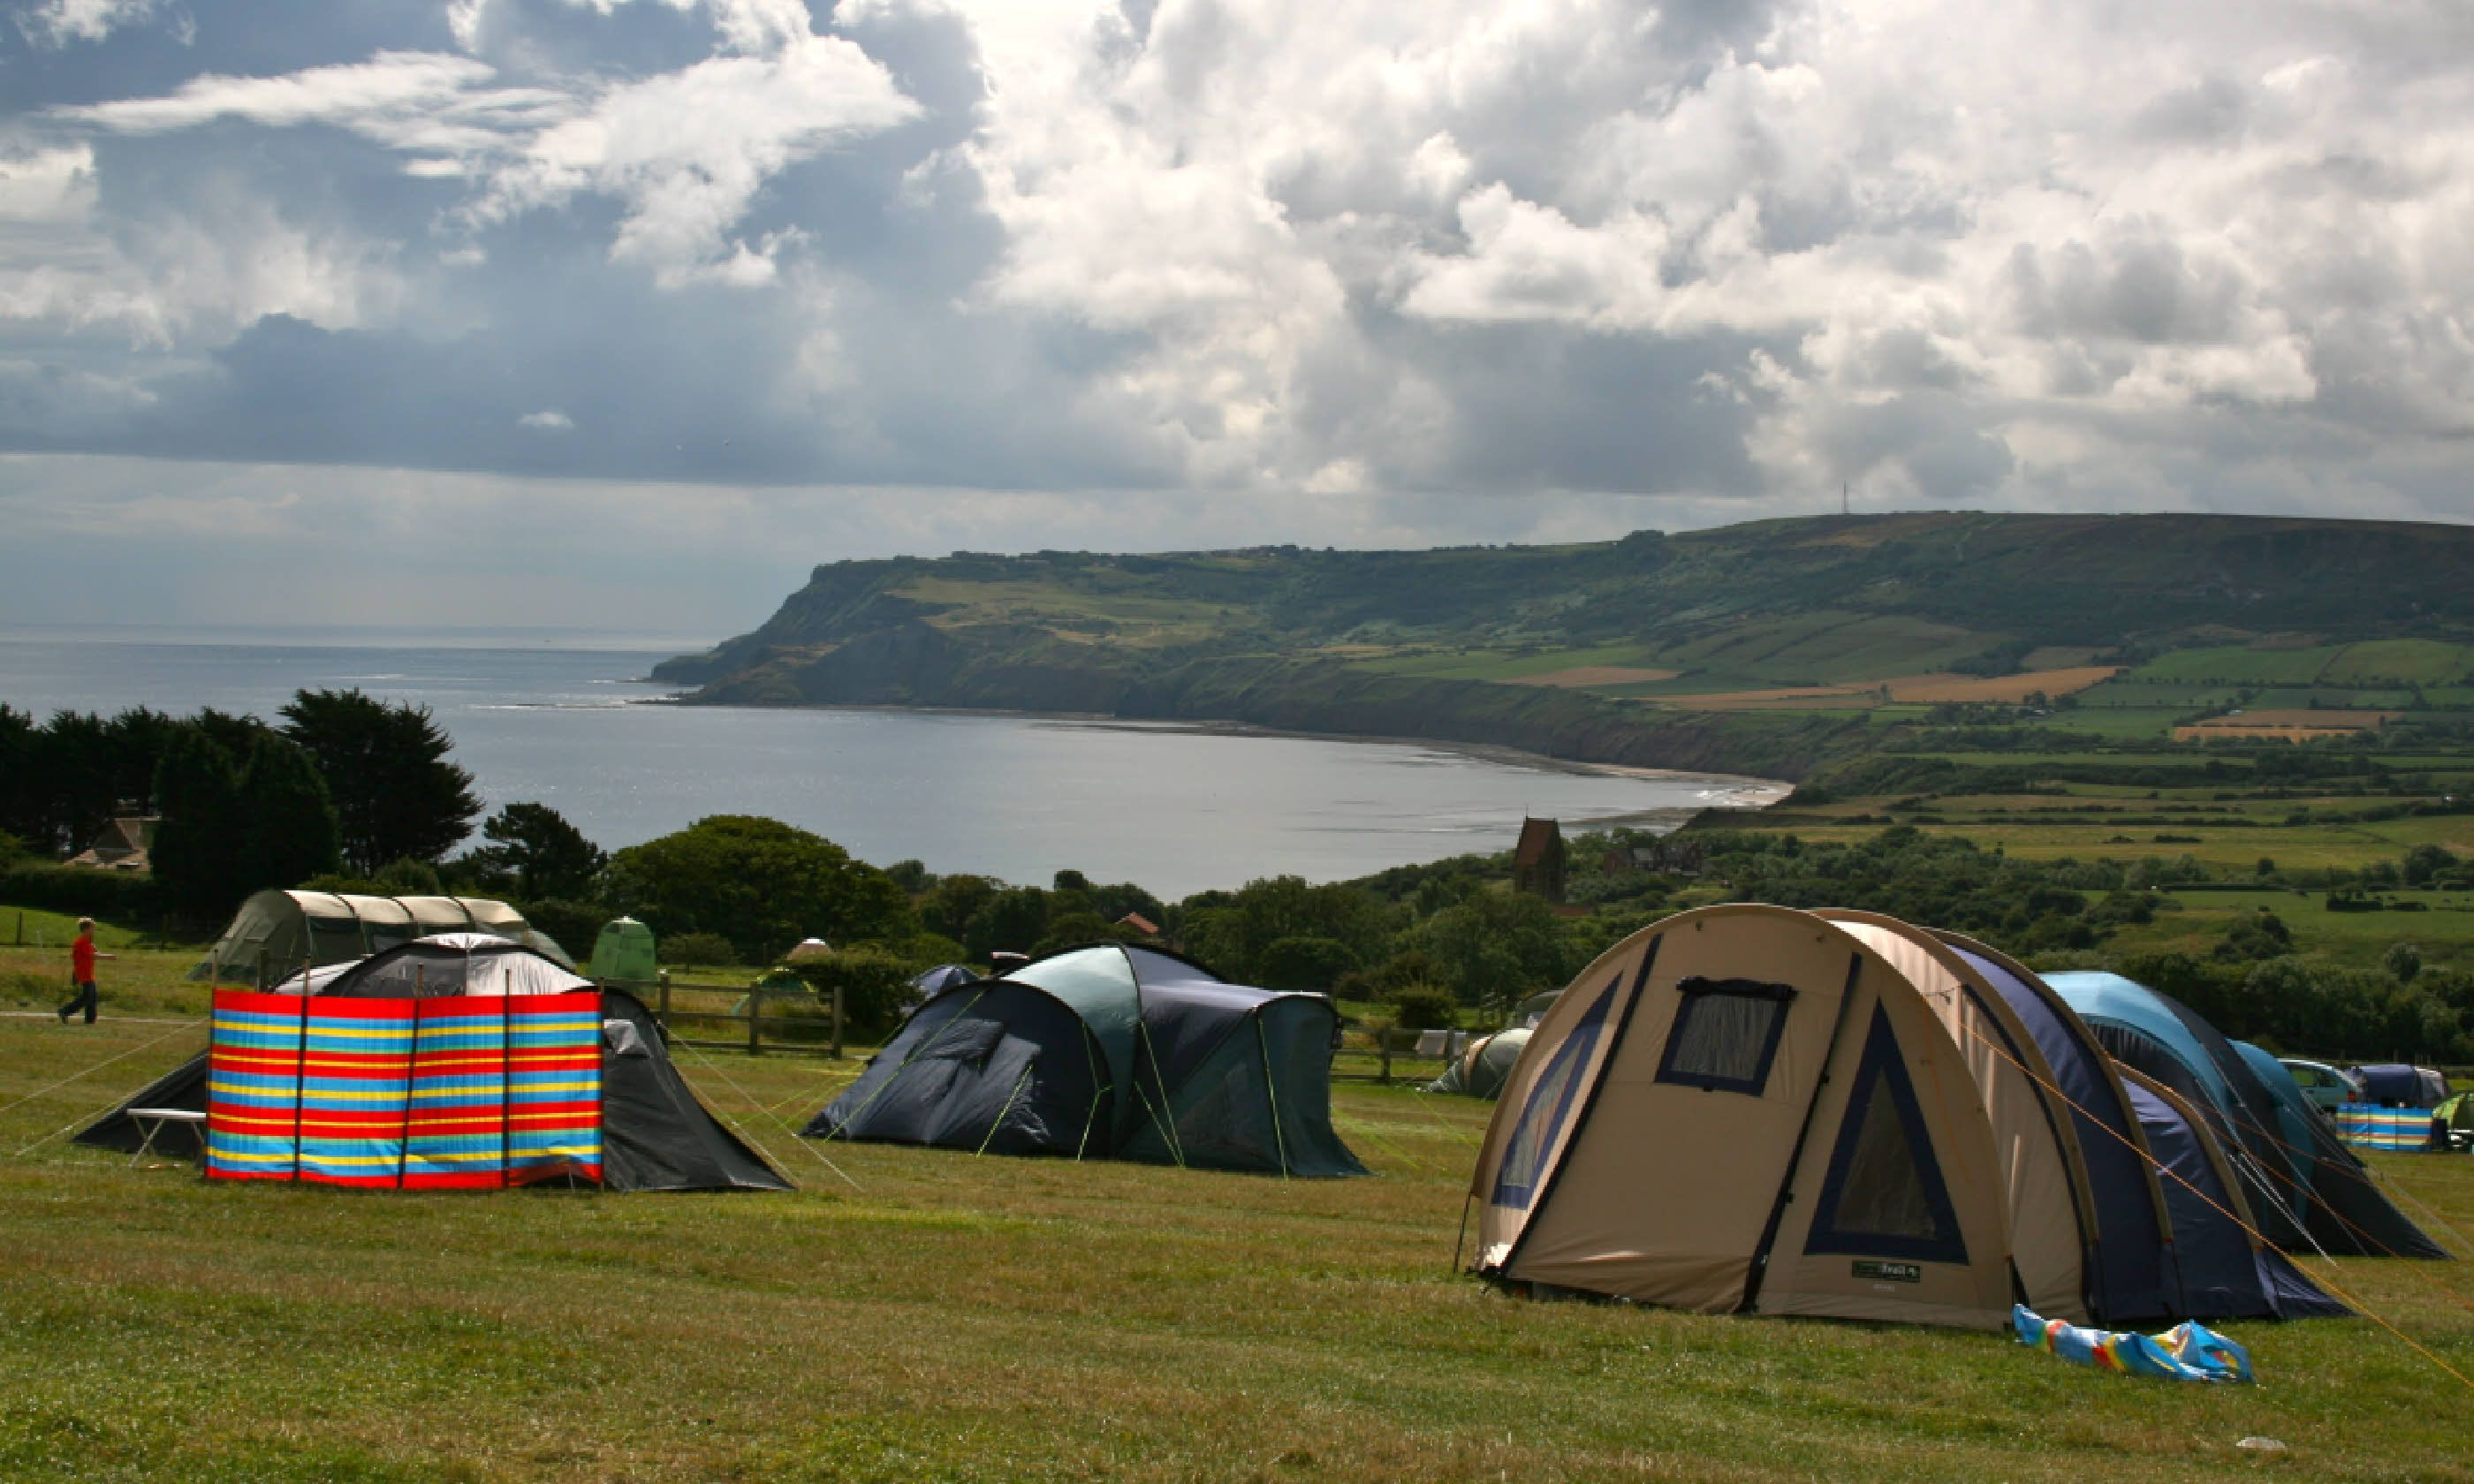 Amenities Pitches for 50 tents and 20 c&ervans/caravans spread out across a gently sloping field. A second field serves as a family play ... & Top 10 cool campsites in England and the Isle of Wight | Wanderlust